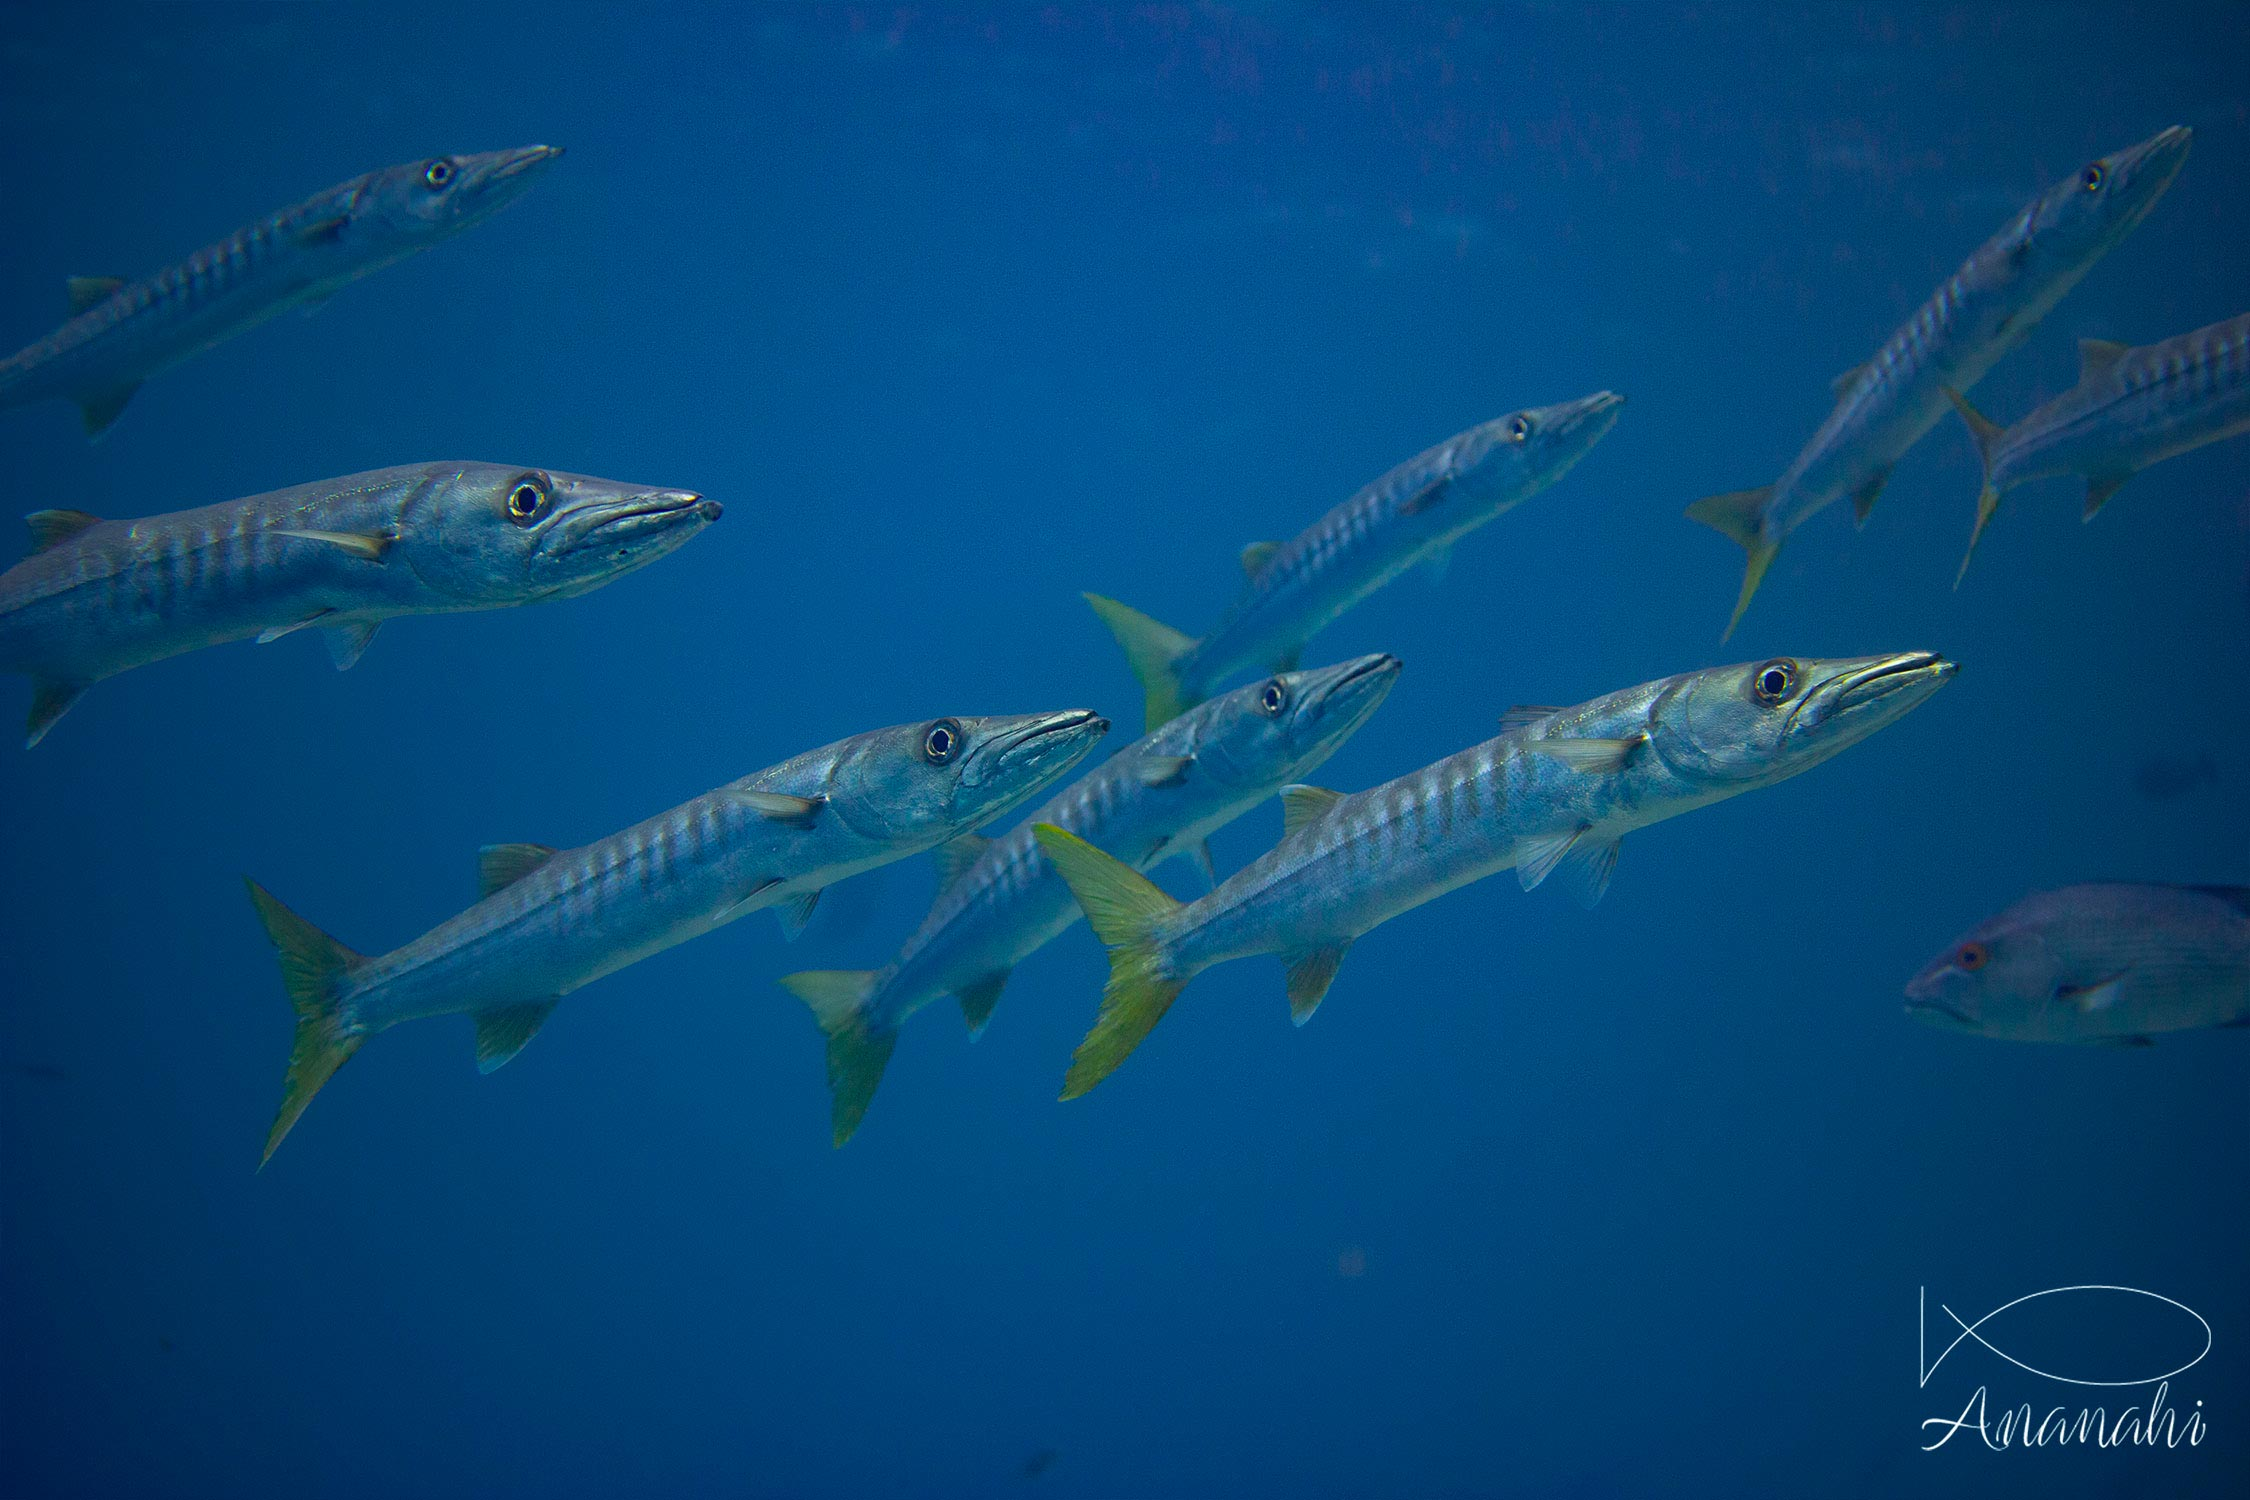 Yellowtail barracuda of Raja Ampat